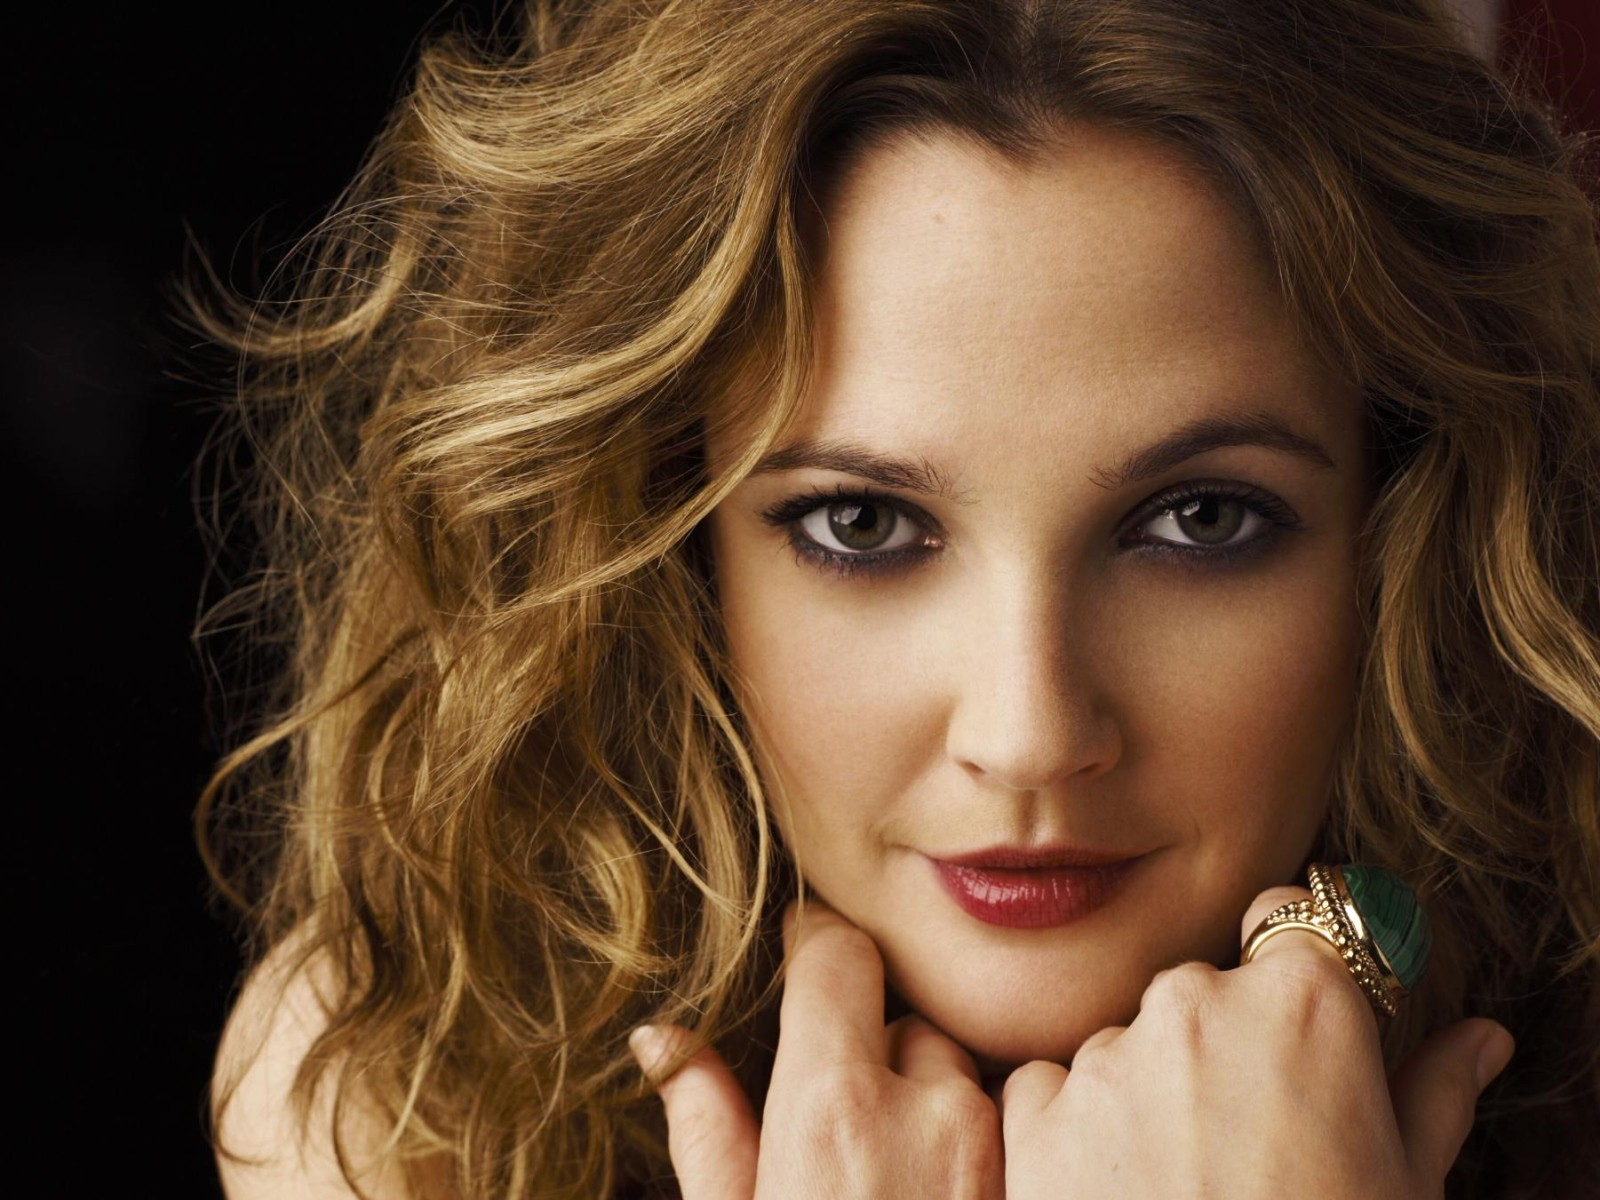 Drew Barrymore Hot Wallpapers 2013 | Drew Barrymore Hd Wallpapers 2013